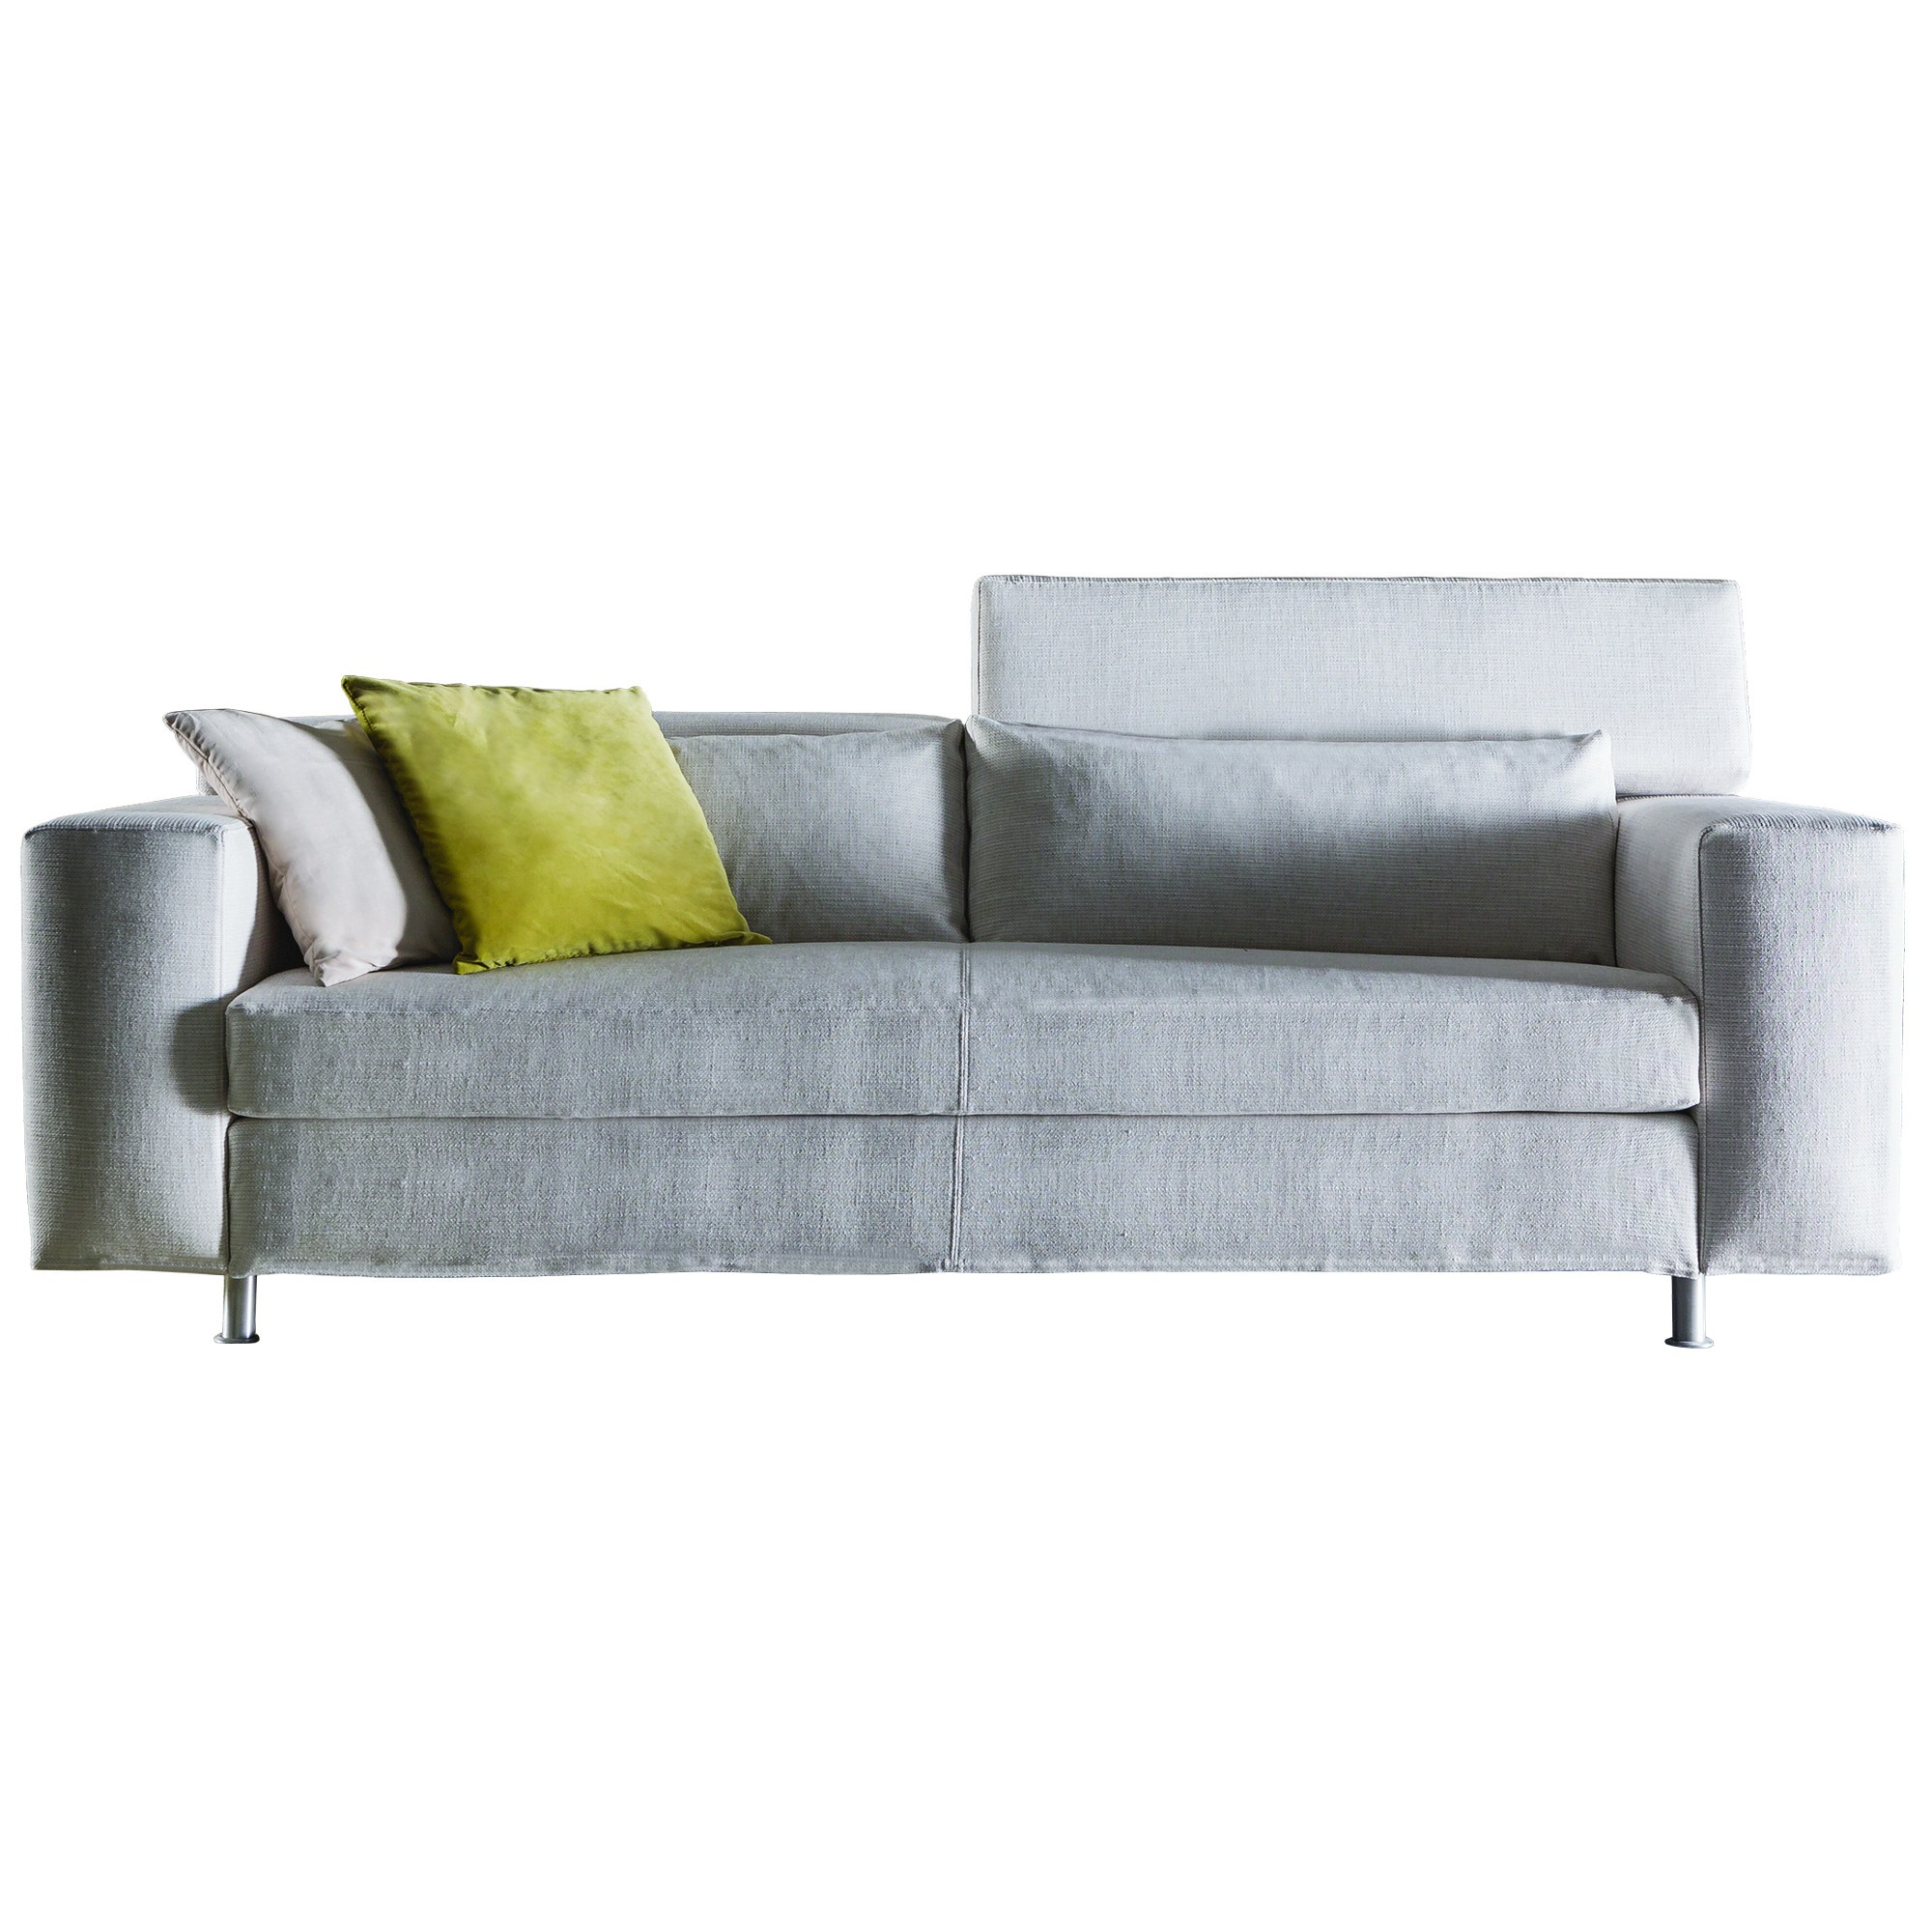 Open Sofa Bed Beds Armchairs